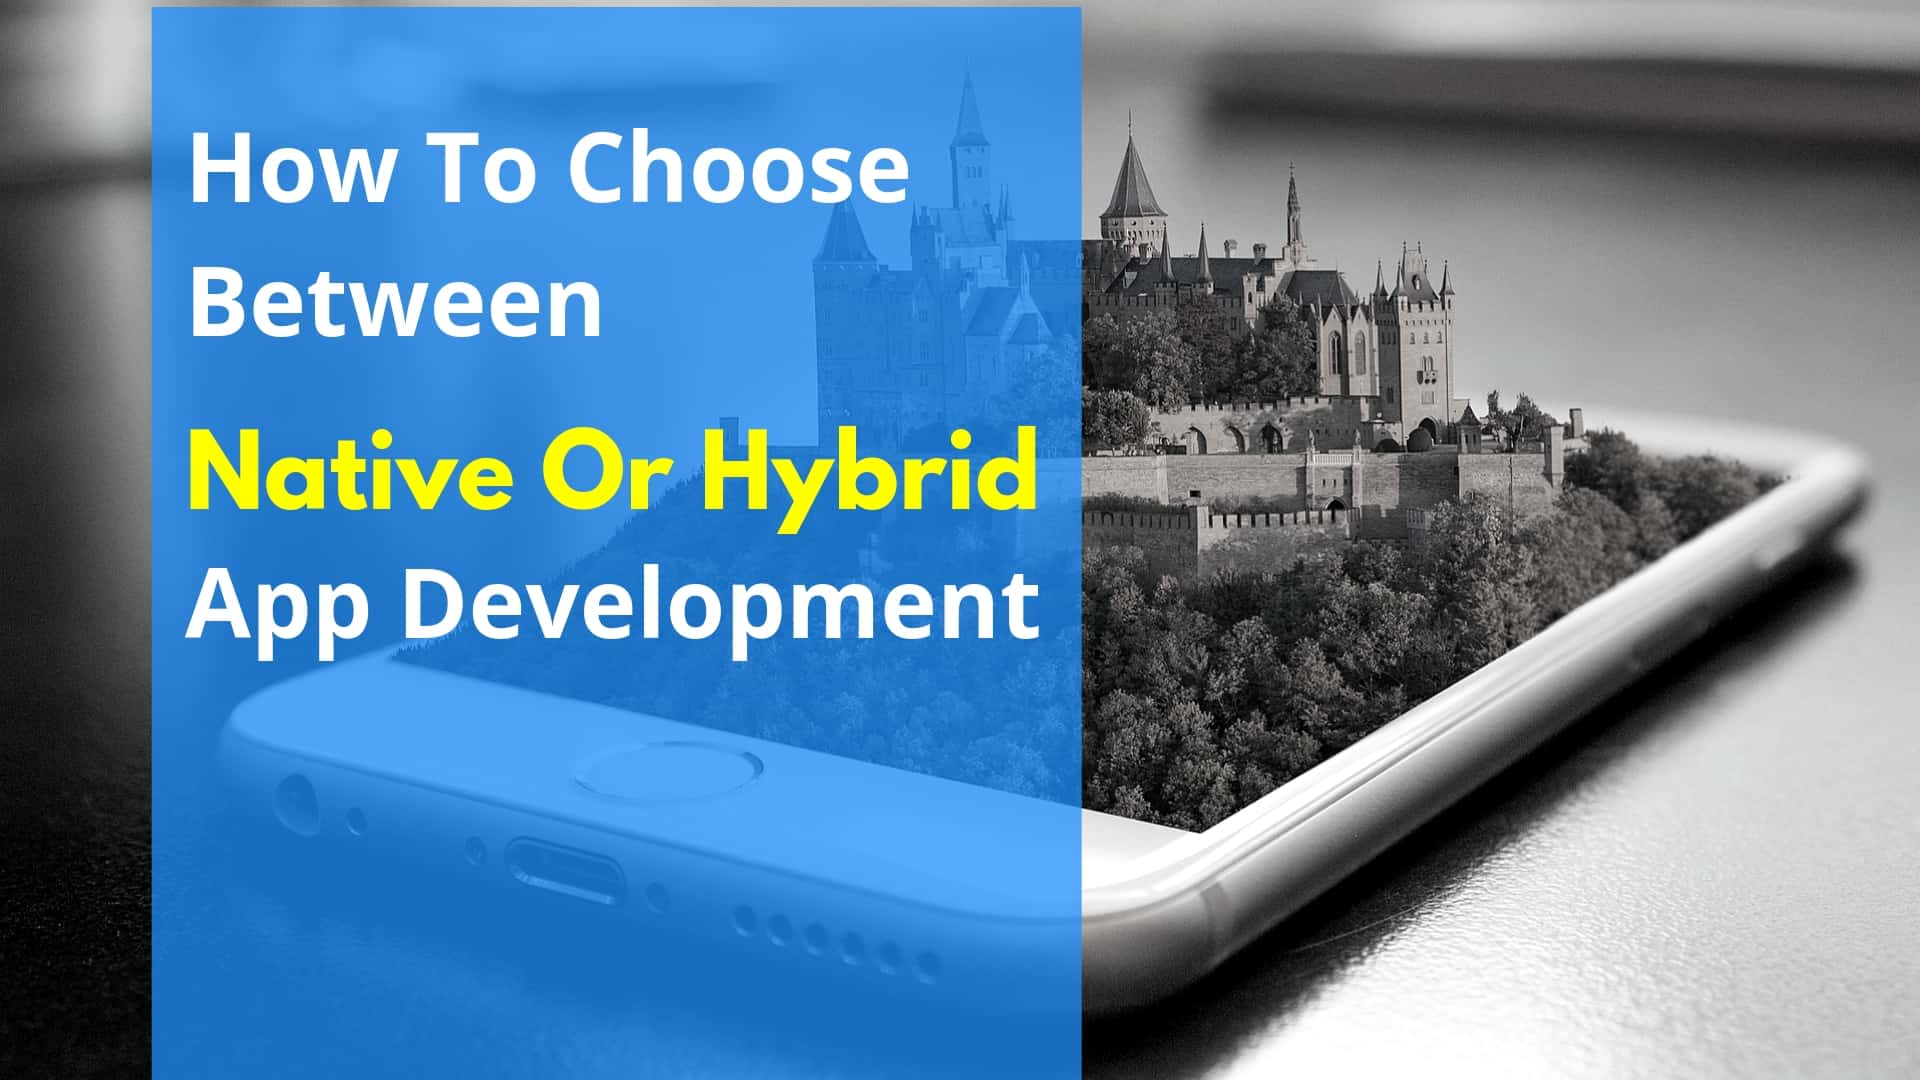 How To Choose Between Native Or Hybrid App Development